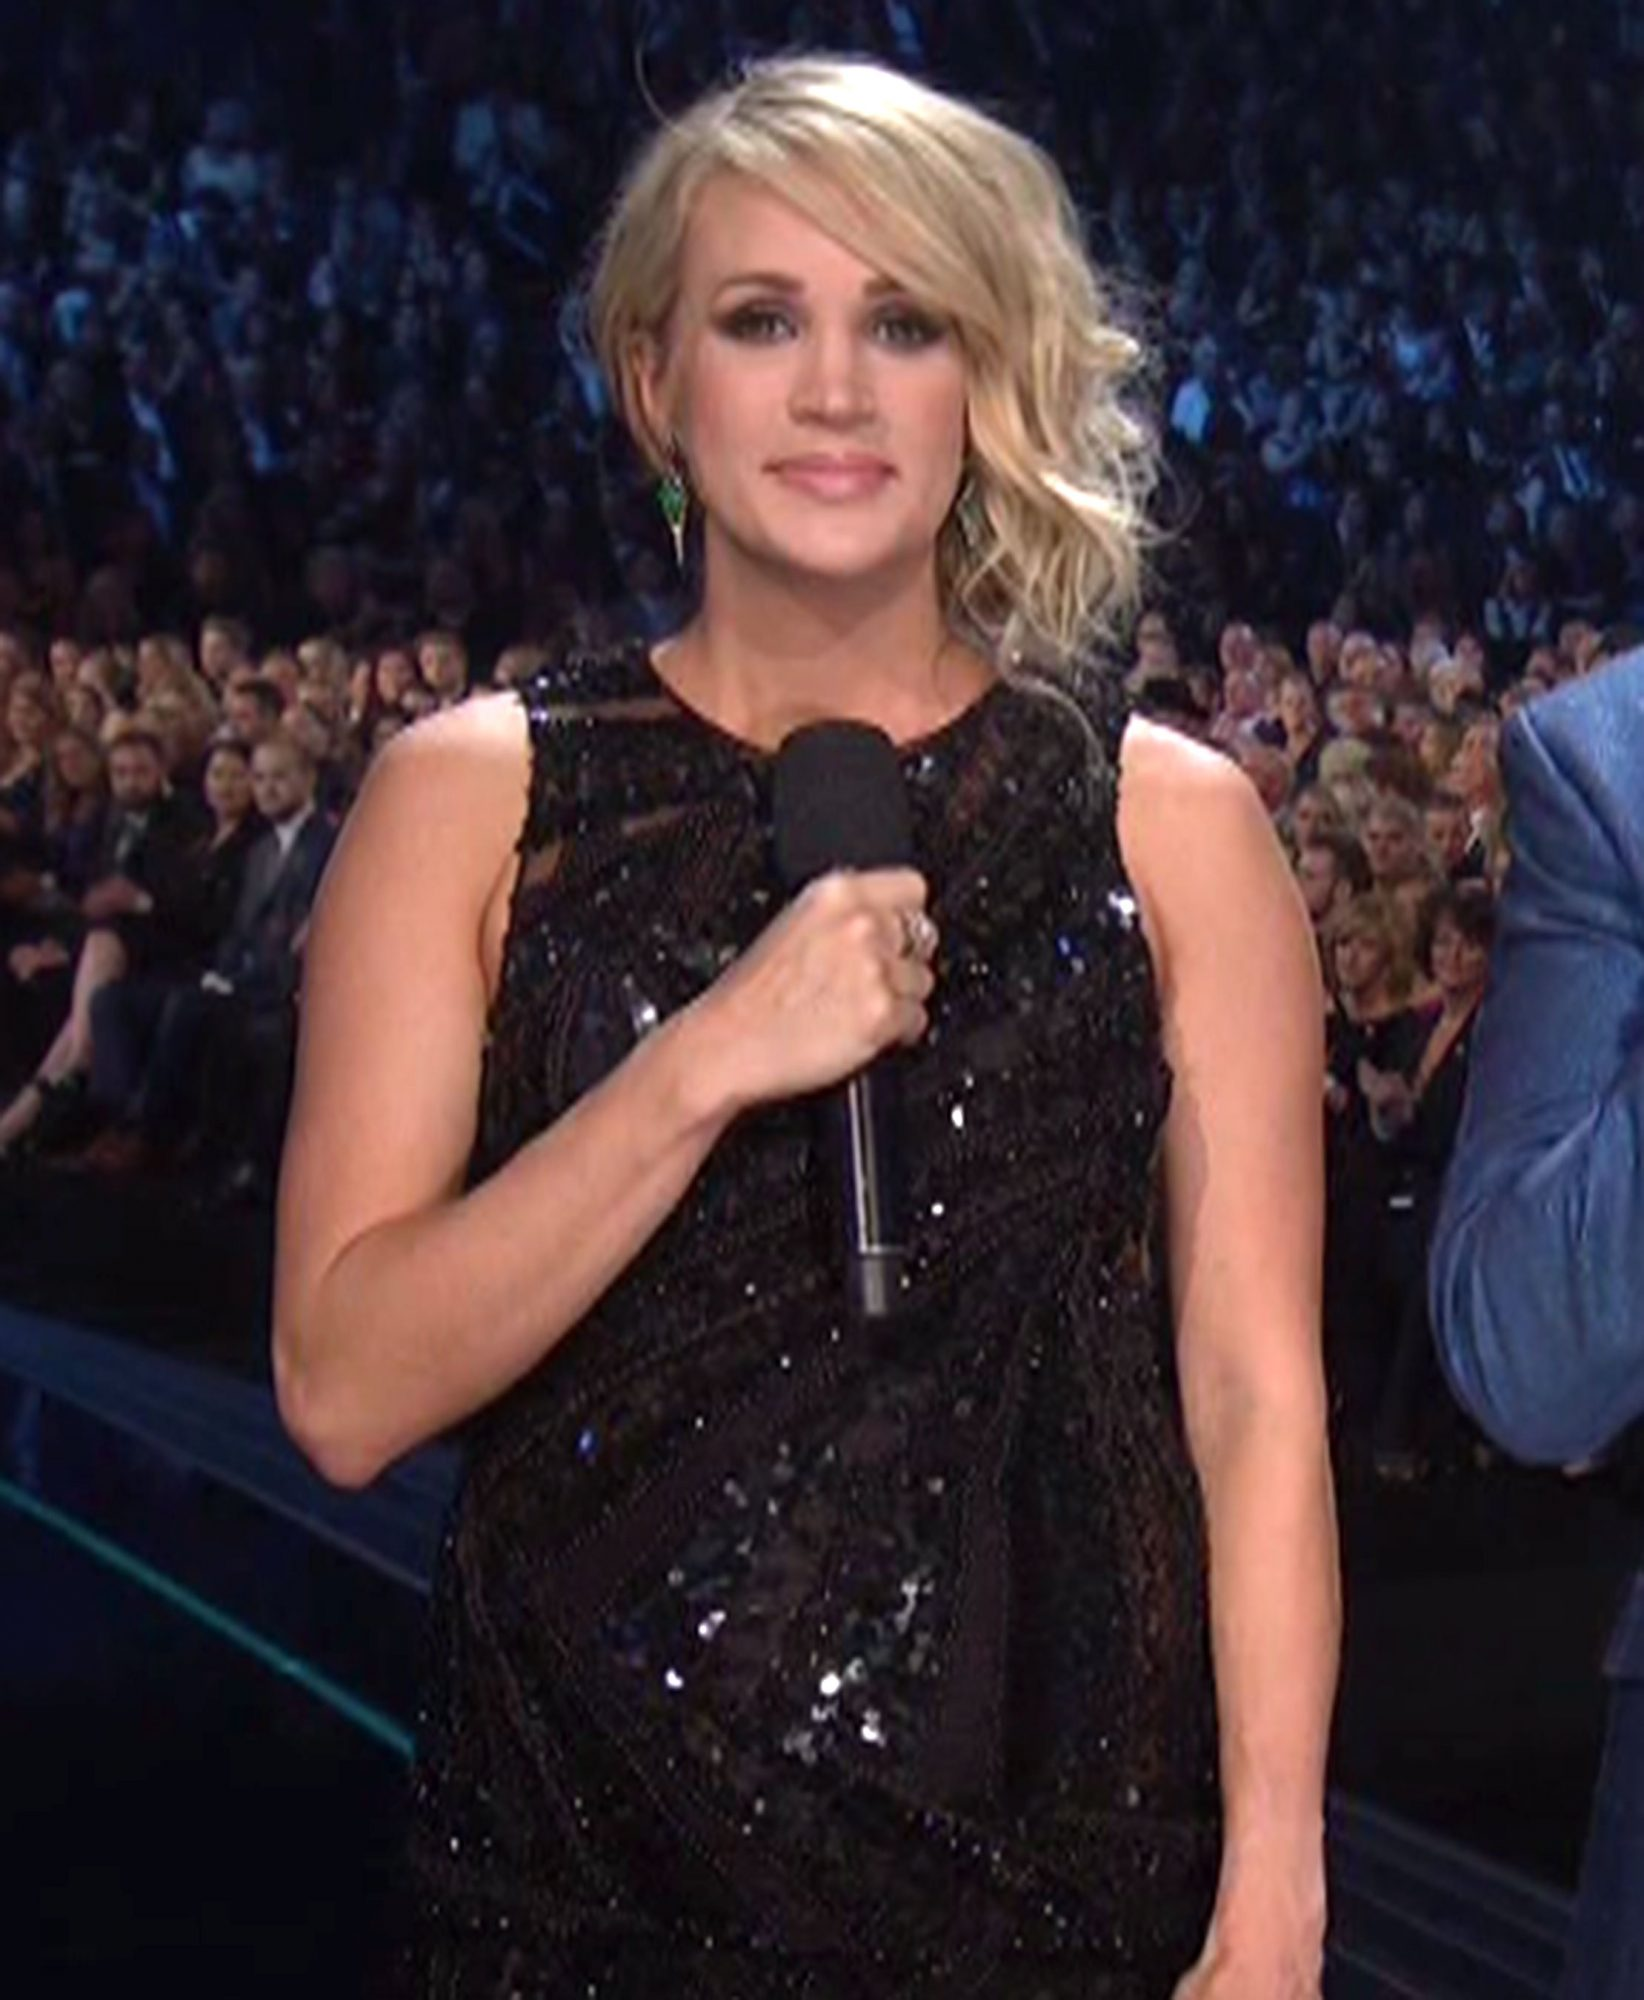 Carrie Underwood outfit changesCredit: ABC